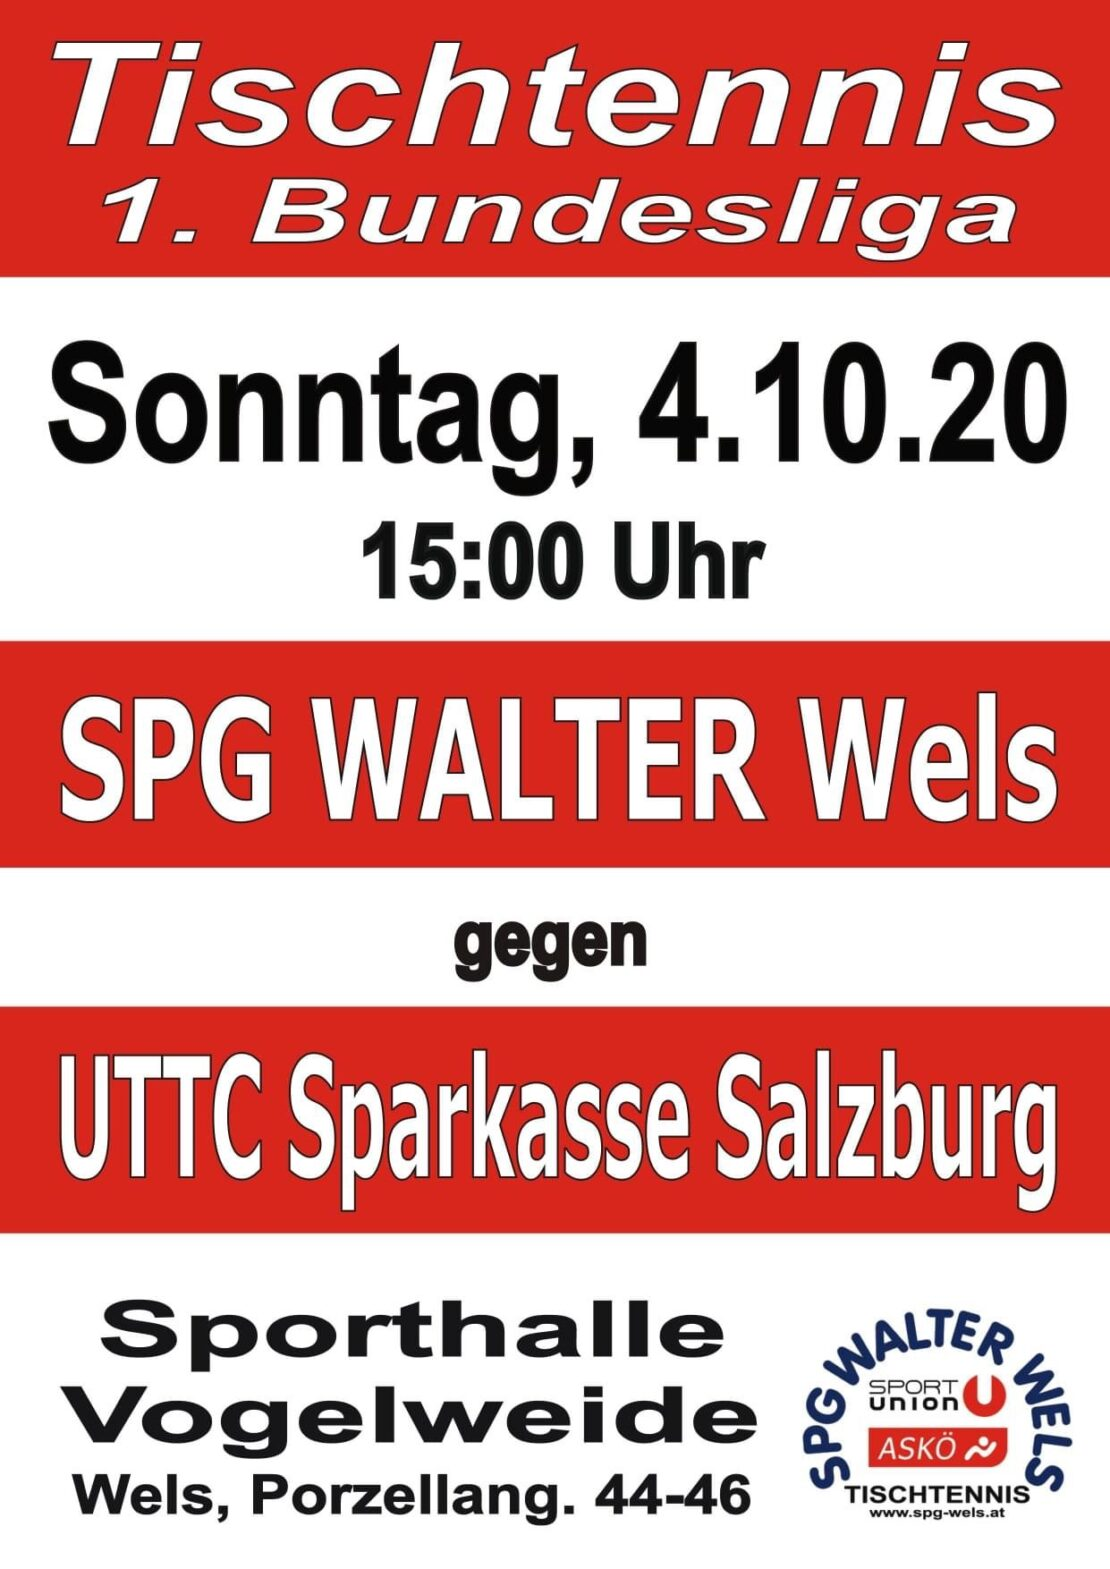 SPG Walter Wels